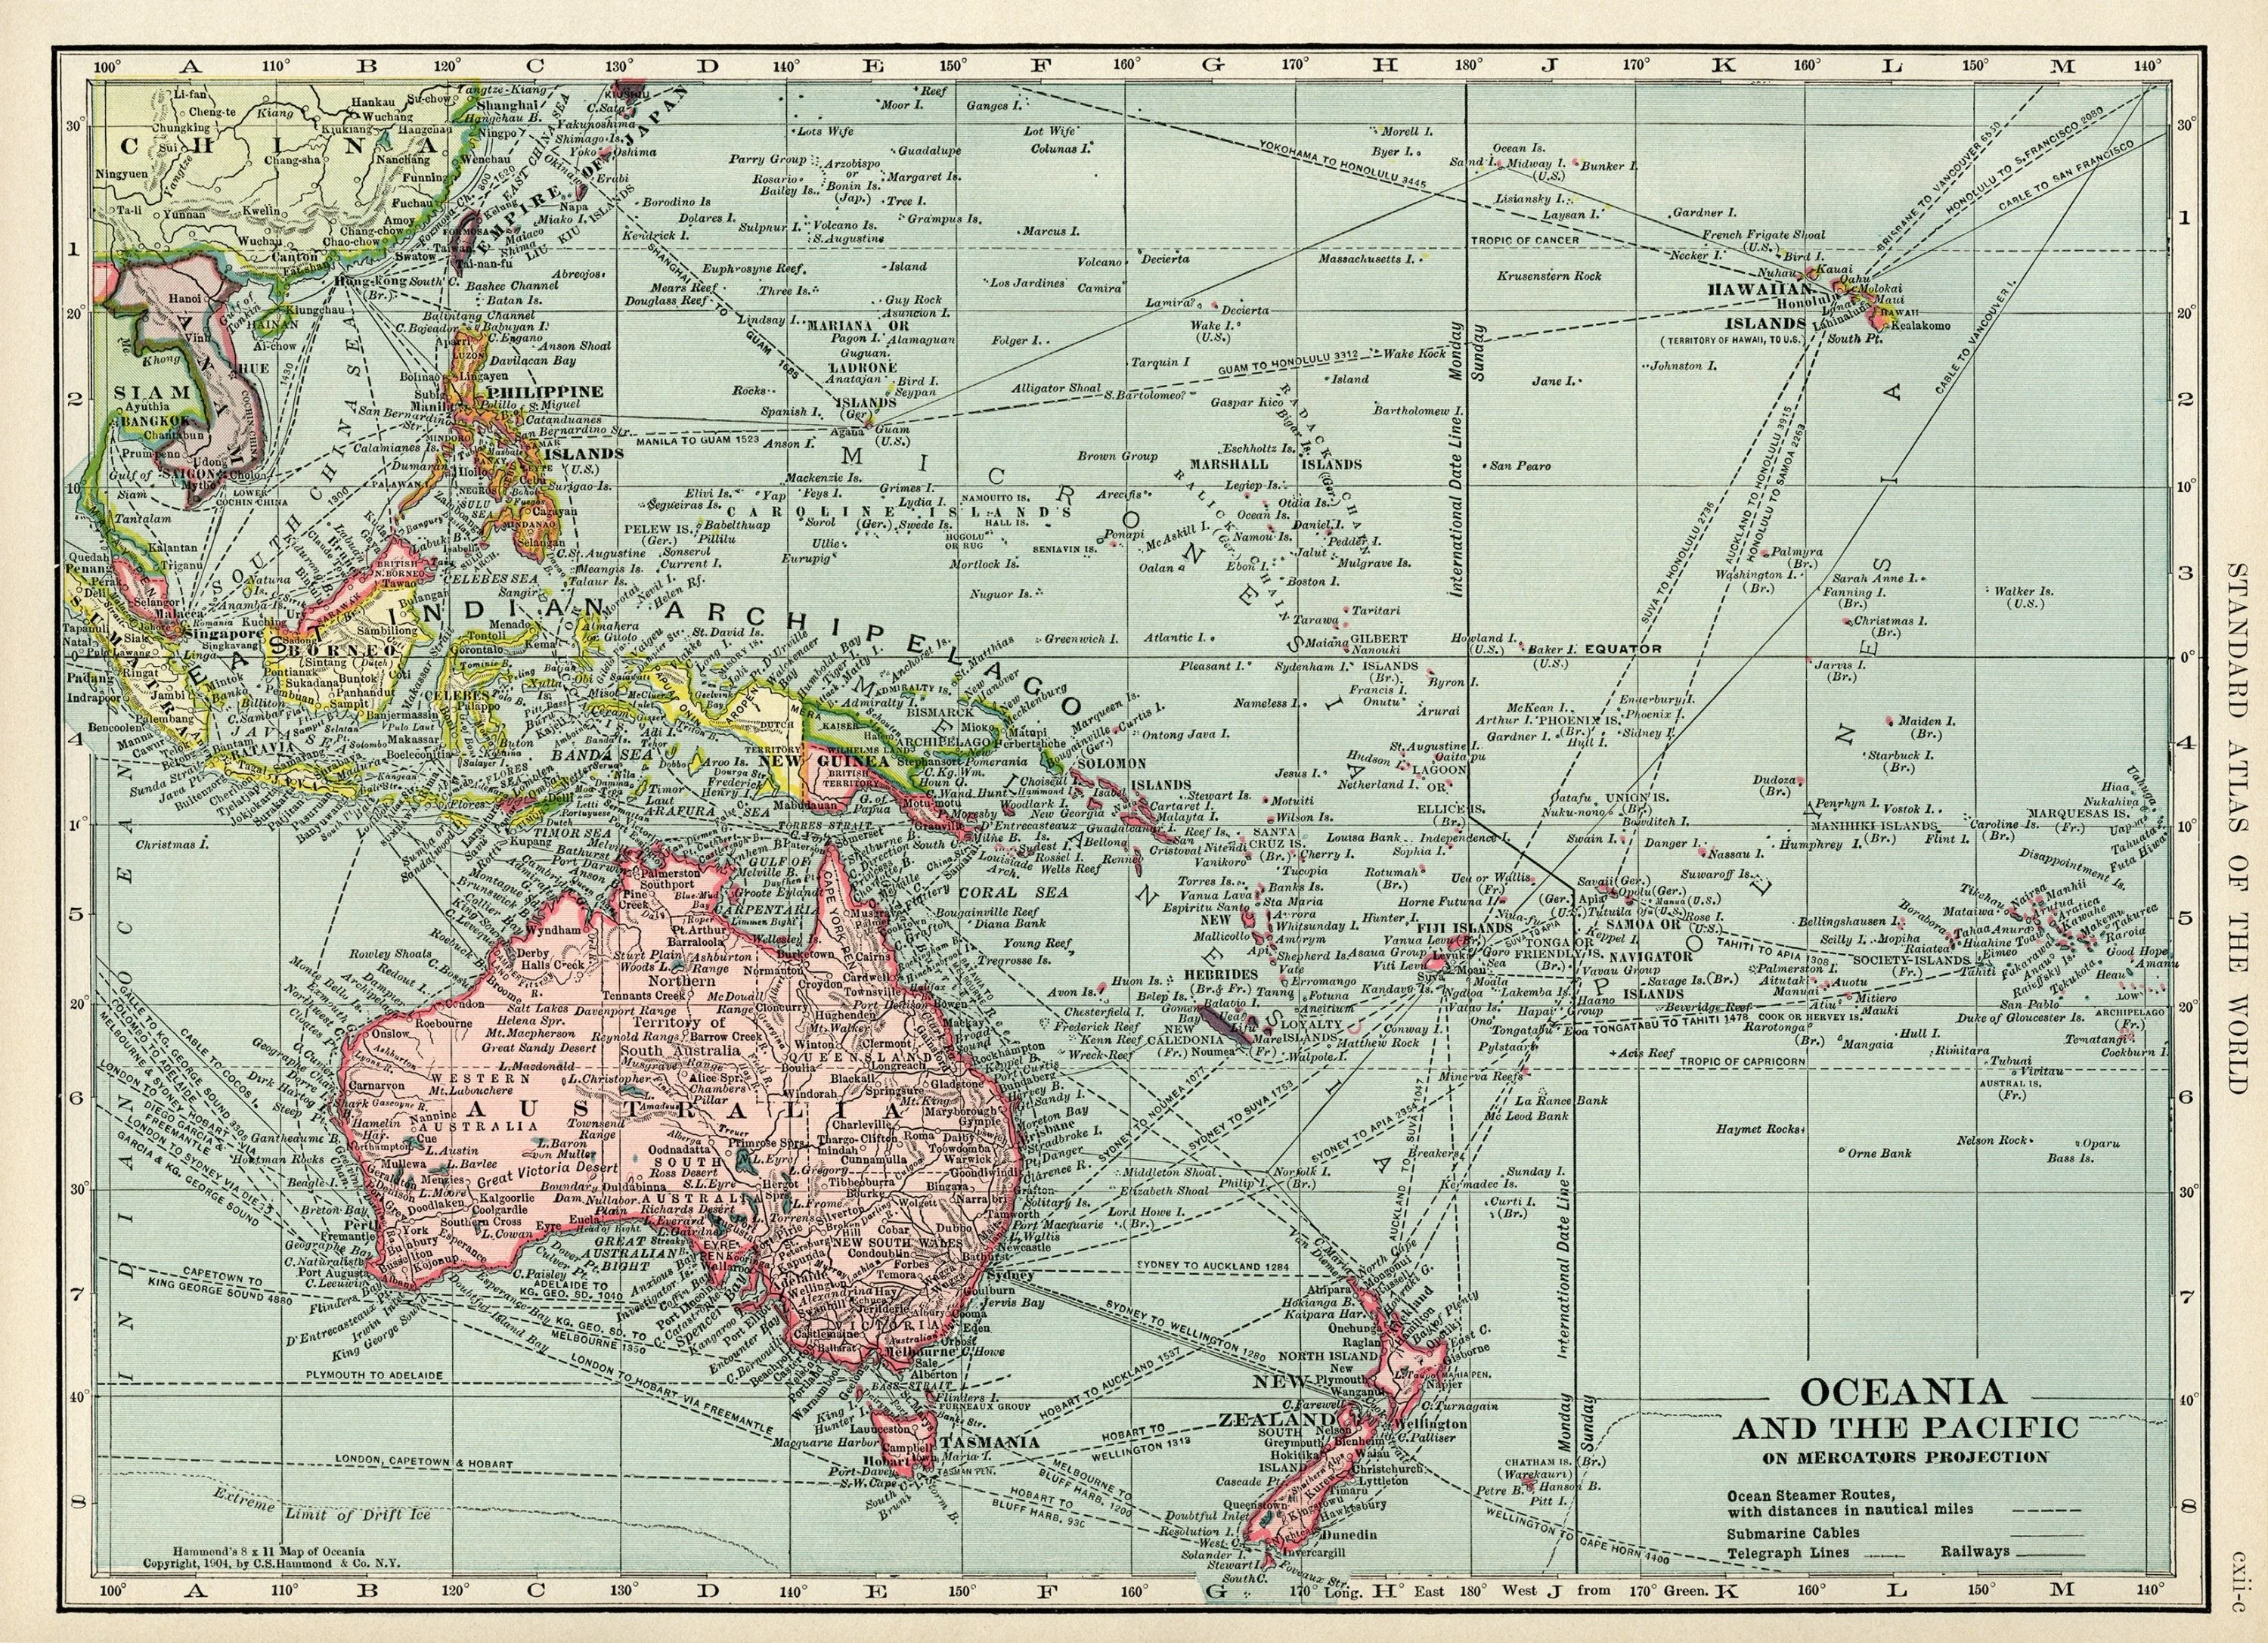 Oceania and pacific map vintage map download antique map c s oceania and pacific map vintage map download antique map c s hammond map gumiabroncs Images